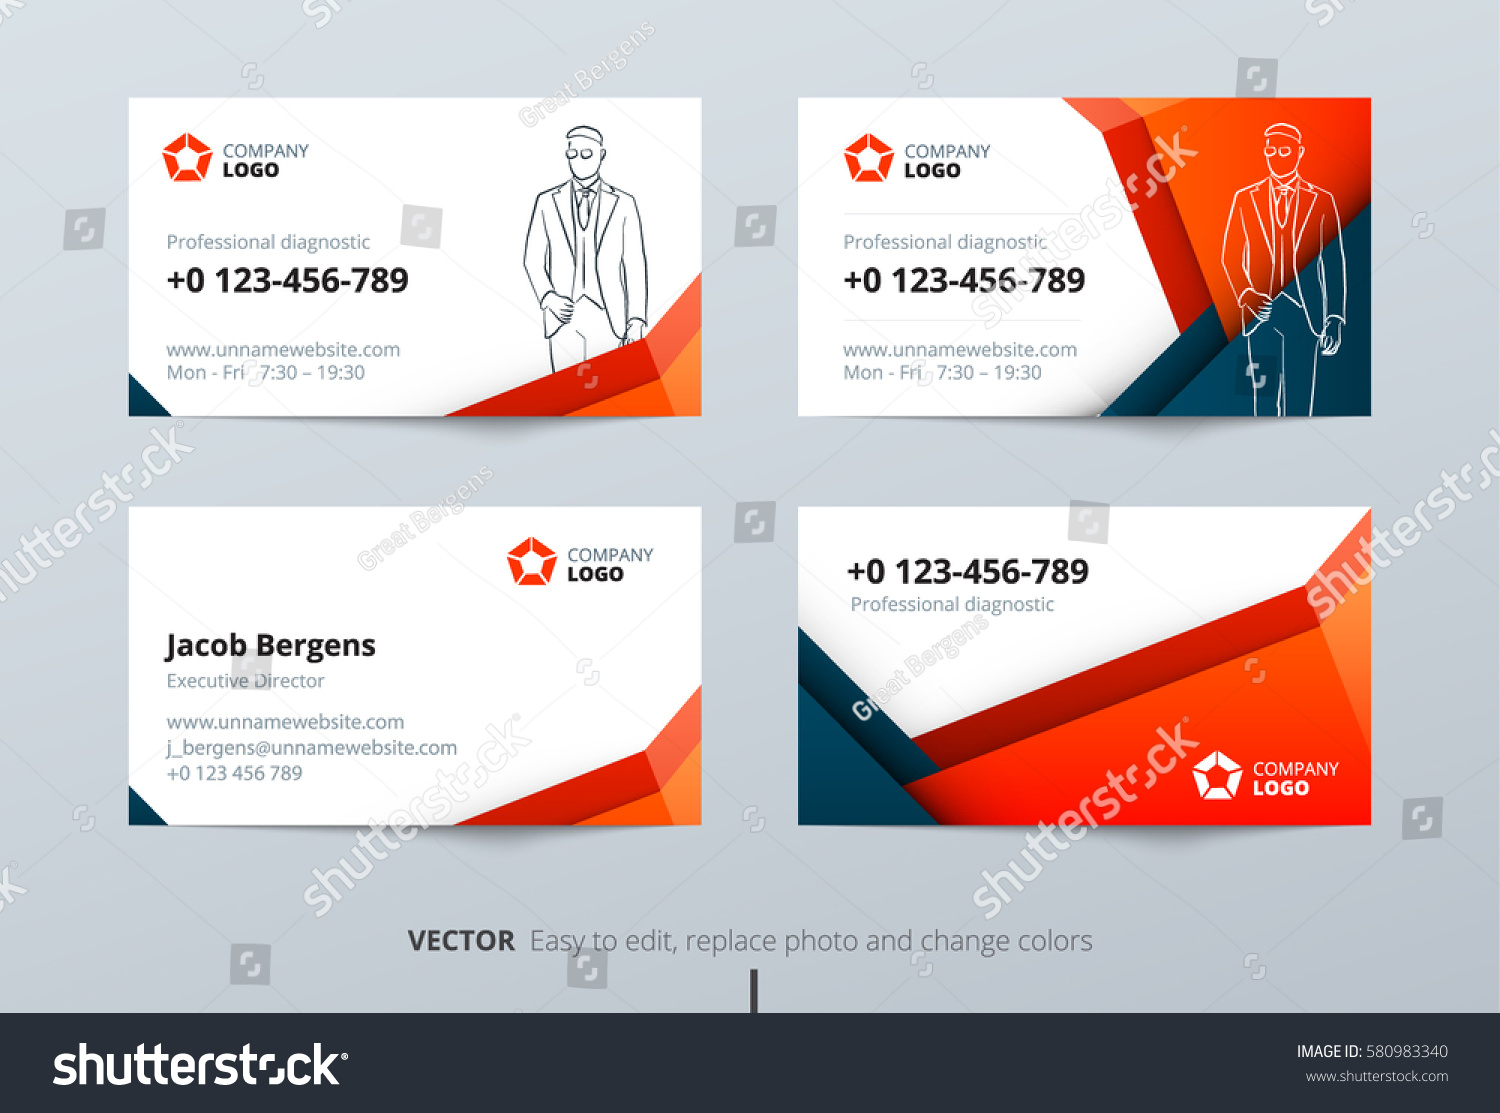 Business card design blue orange business stock vector 2018 business card design blue orange business card template for personal or corporate use reheart Gallery